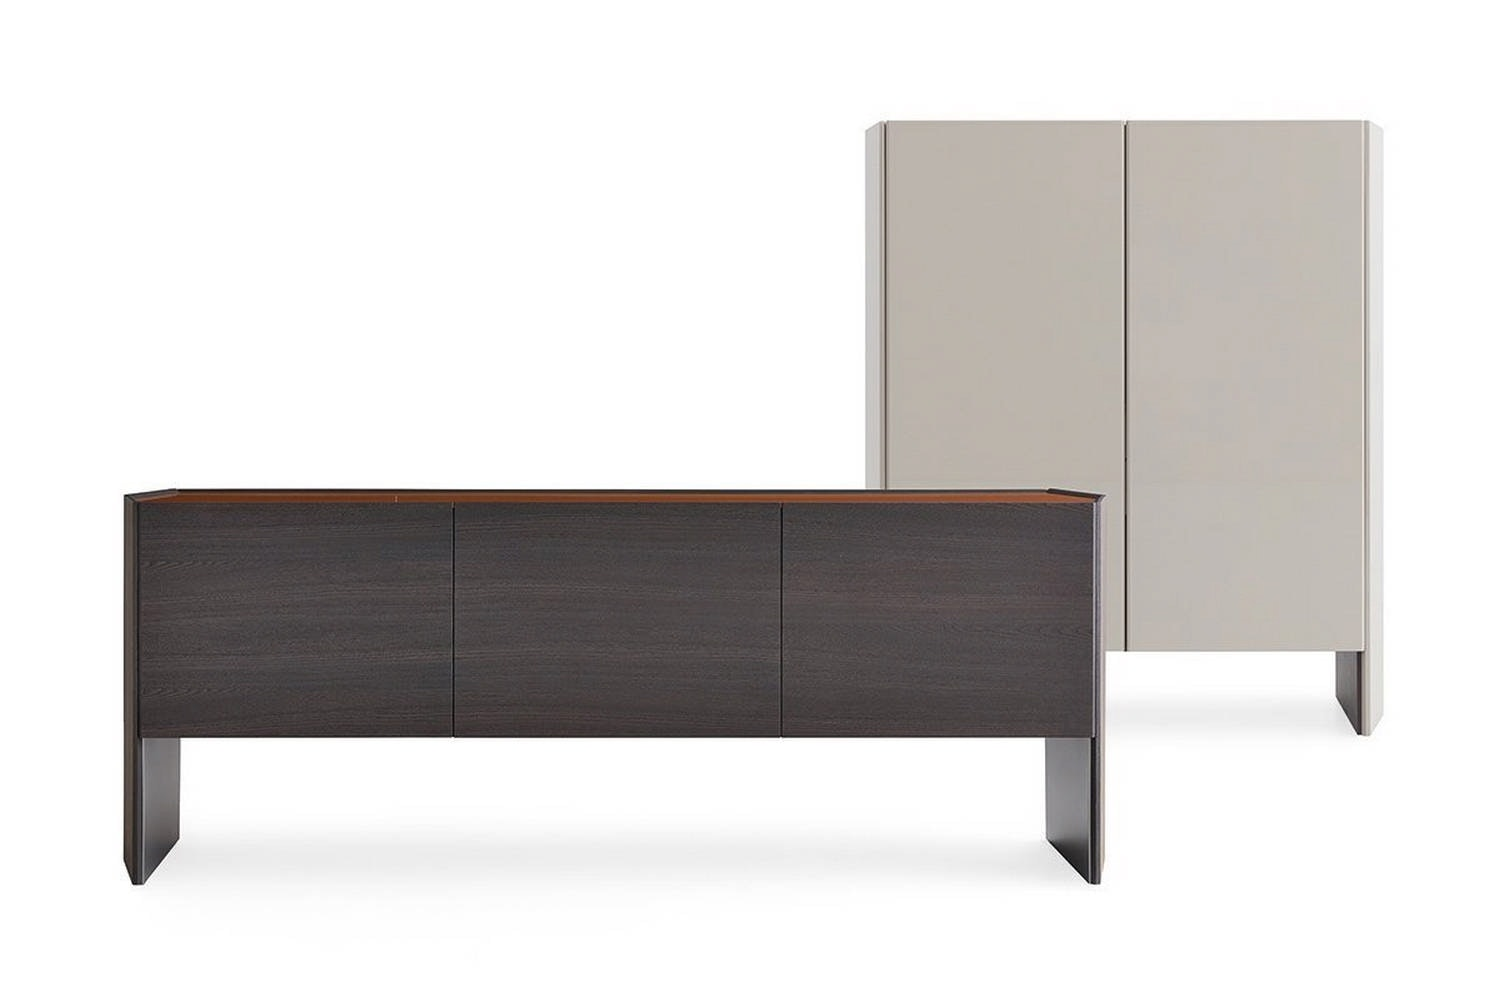 Gio High Sideboard by Rodolfo Dordoni for Poliform